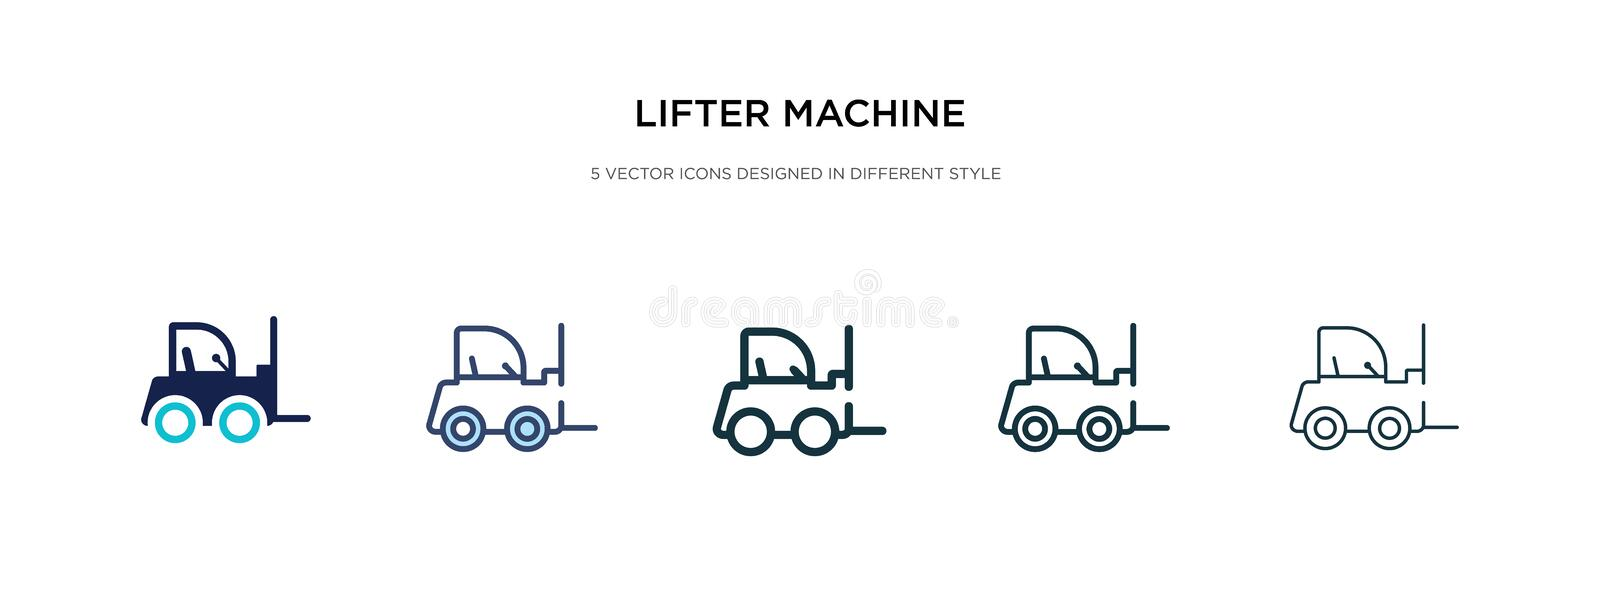 Lifter machine icon in different style vector illustration. two colored and black lifter machine vector icons designed in filled, royalty free illustration